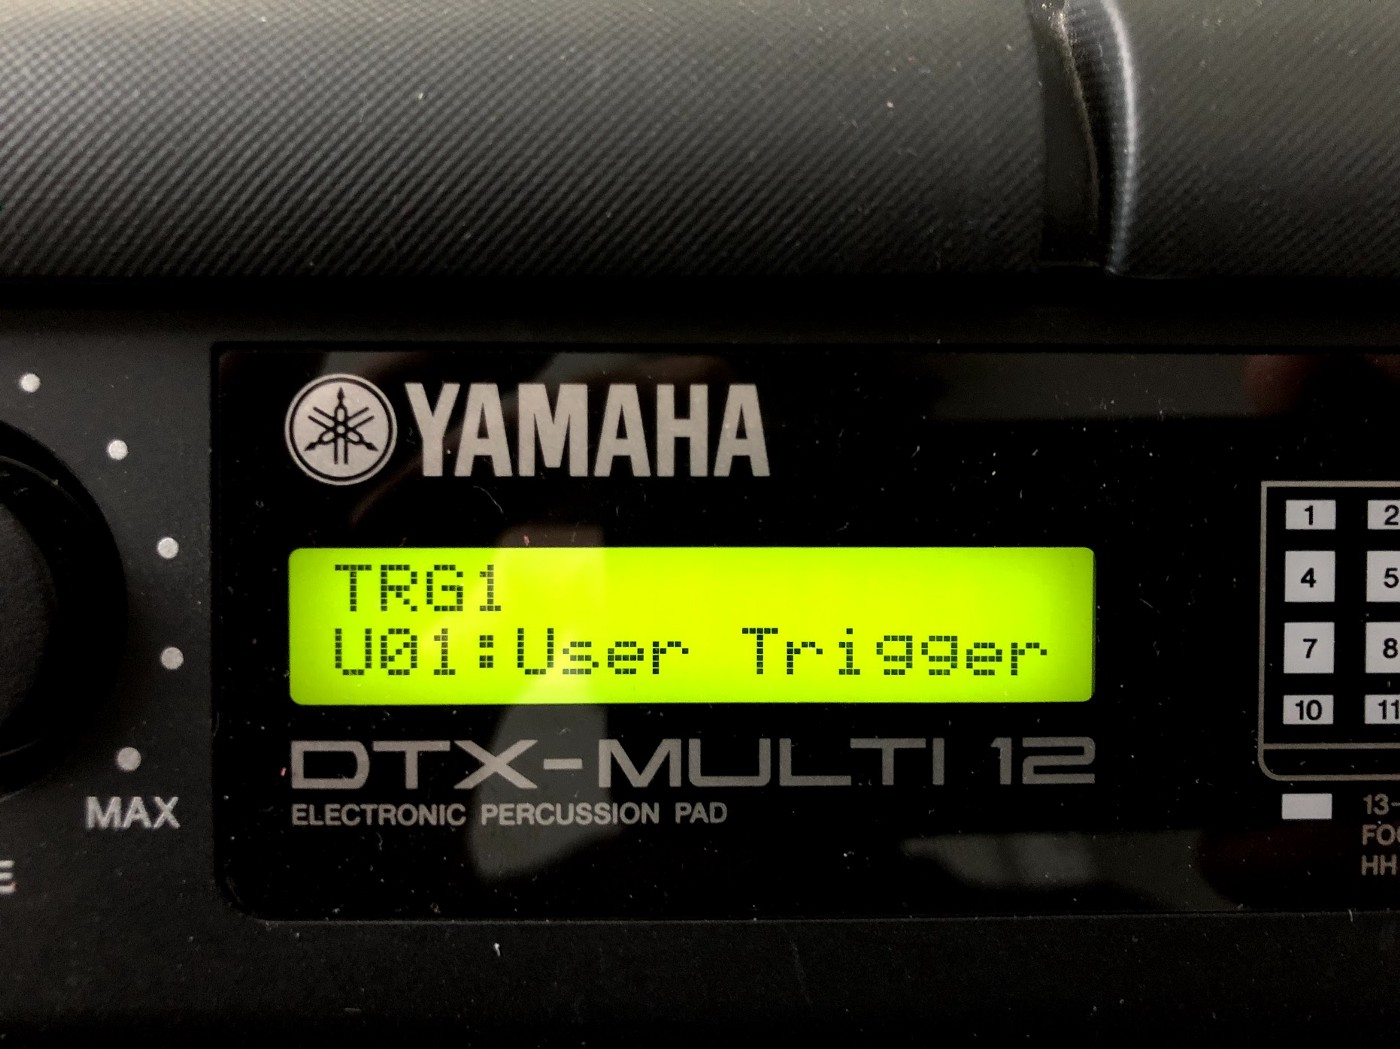 First steps with Yamaha's DTX Multi 12 drum pads - Adrien Joly - Medium